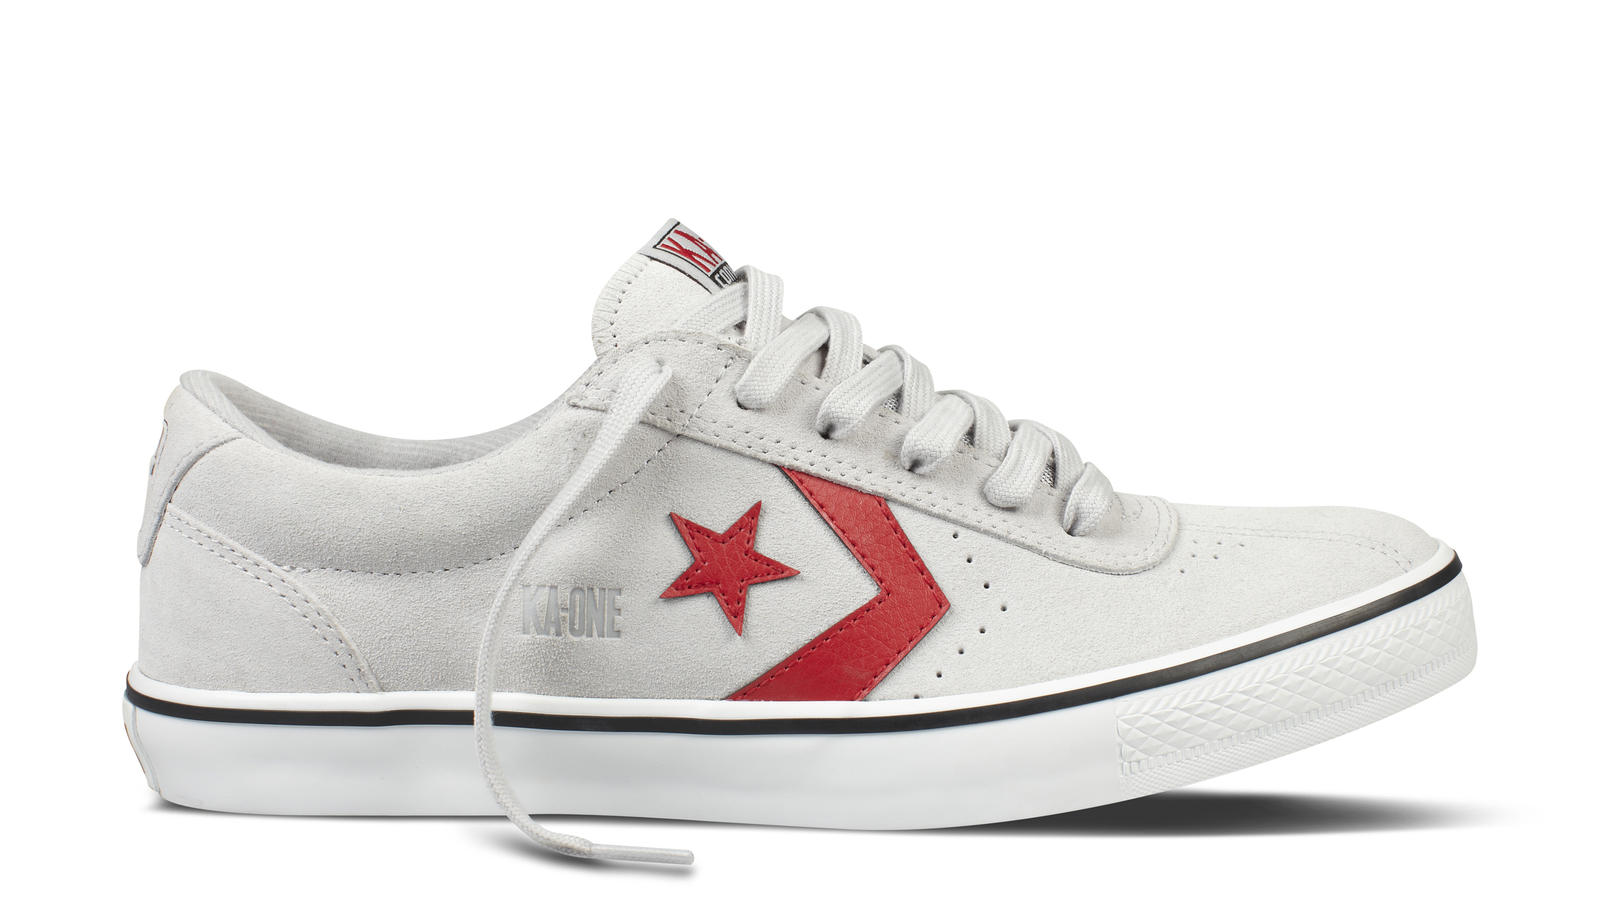 Converse Announces The Launch Of The KA-One Vulc And The Fall 2012 ...